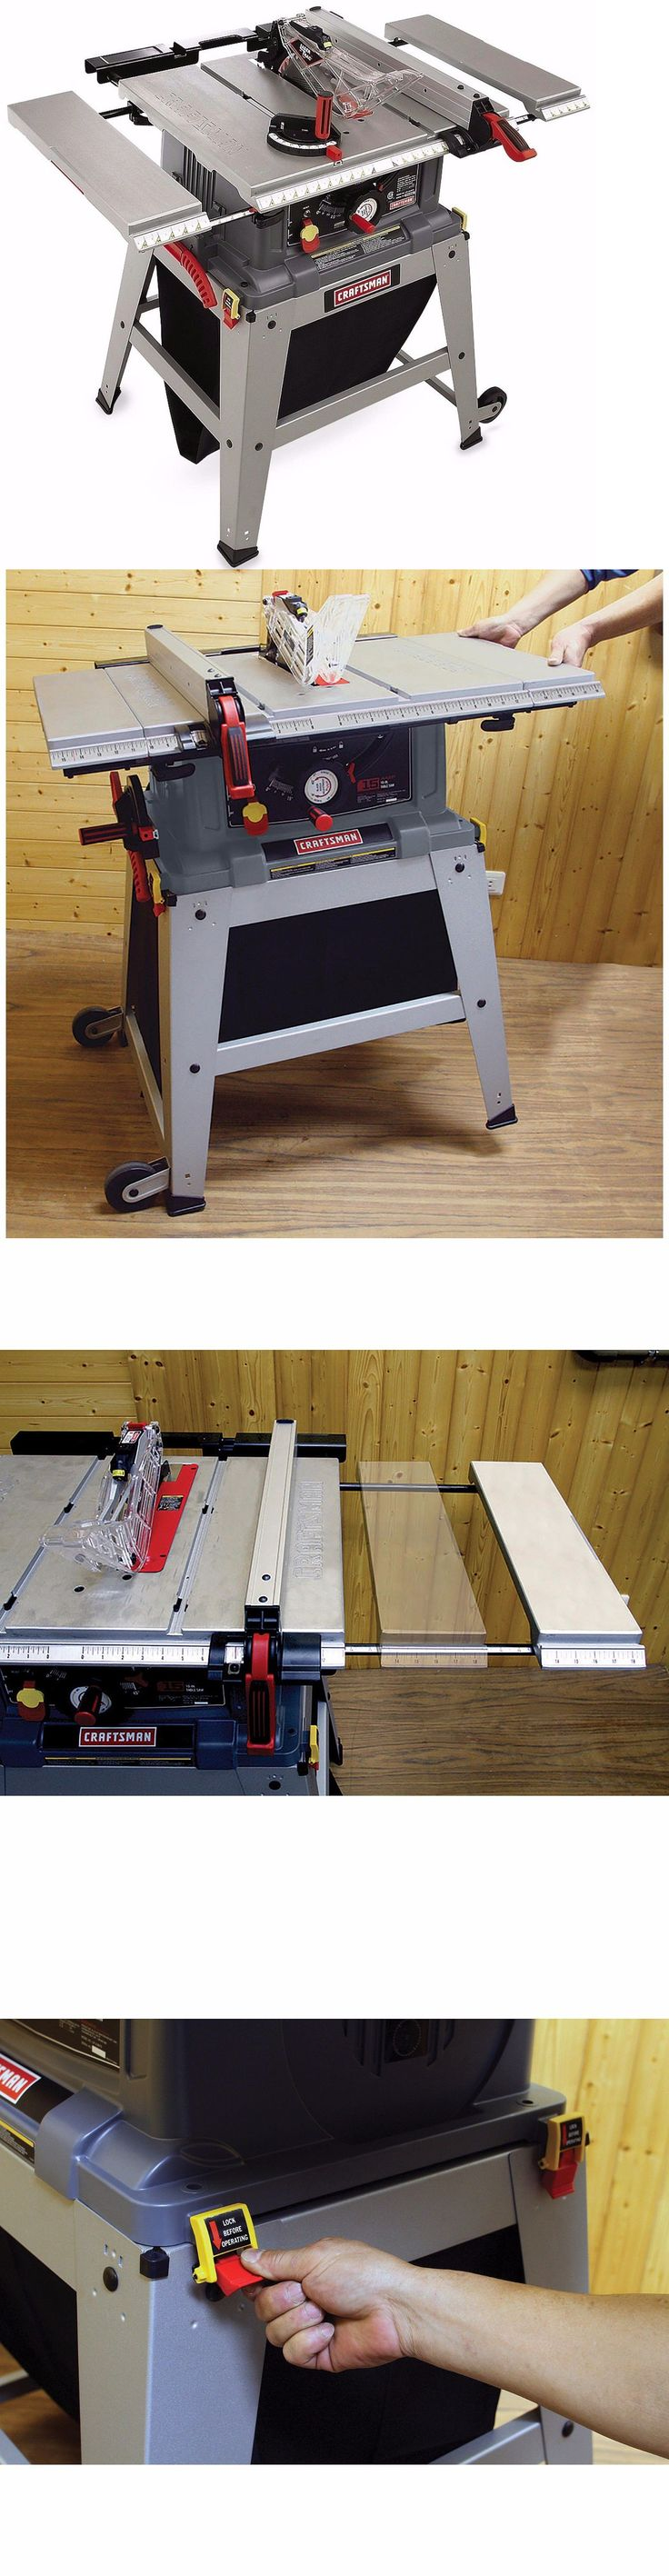 Tools 40 102 promax cast iron router table extension free shipping - Router Tables 75680 New Craftsman Table Miter Saw W 10 Inch Wood Cutting Laser